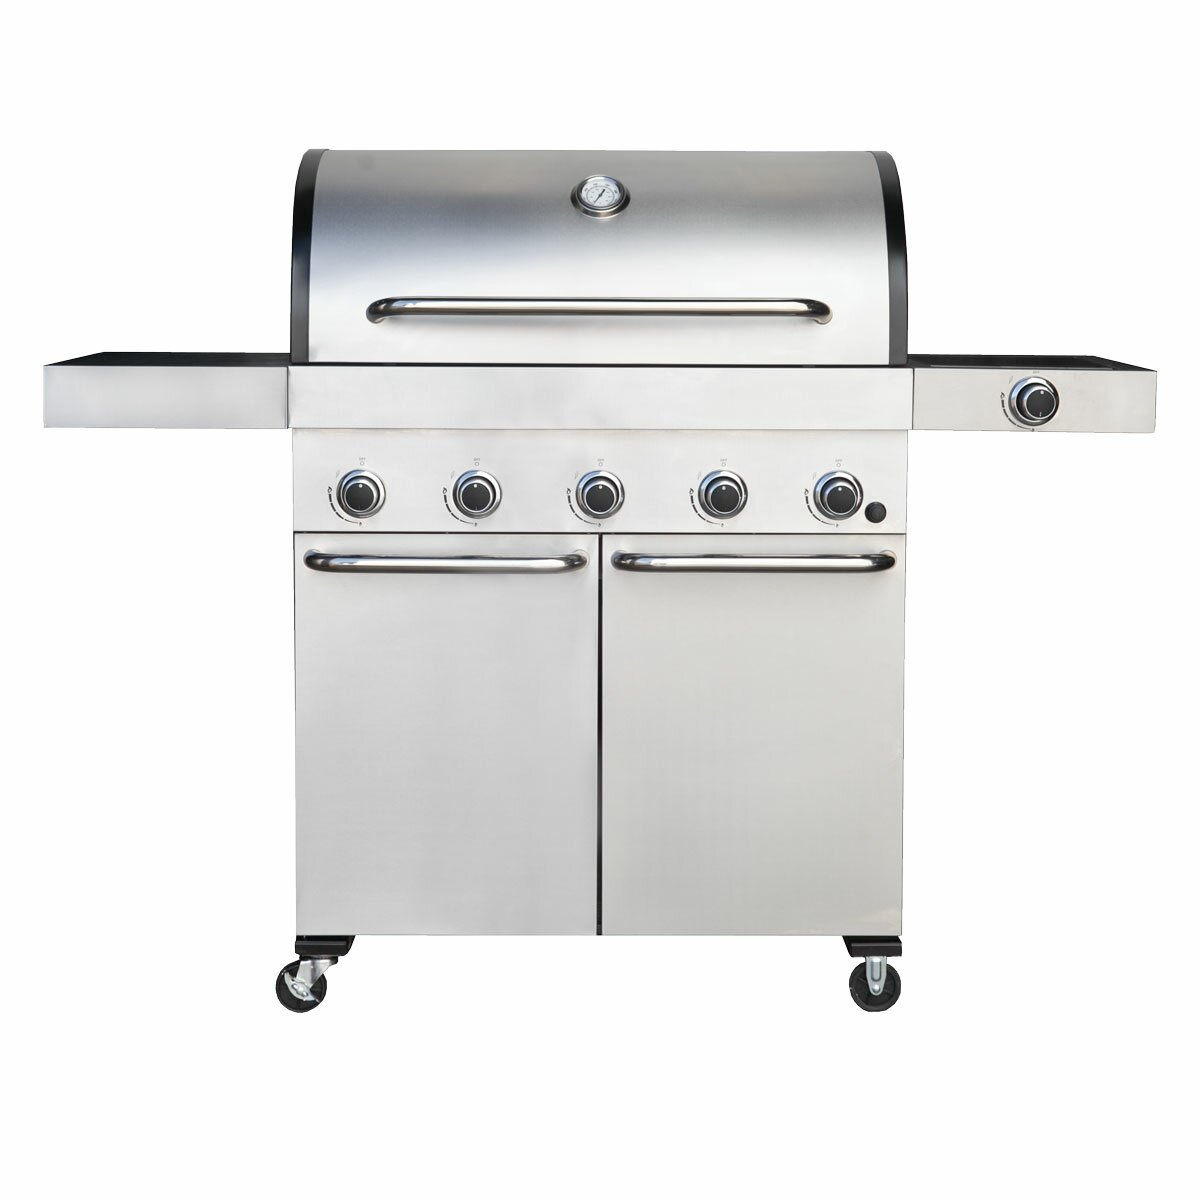 Bbq Galore Outdoor Kitchen Barbeques Galore Captain Cook 5 Burner Propane Gas Grill With Side